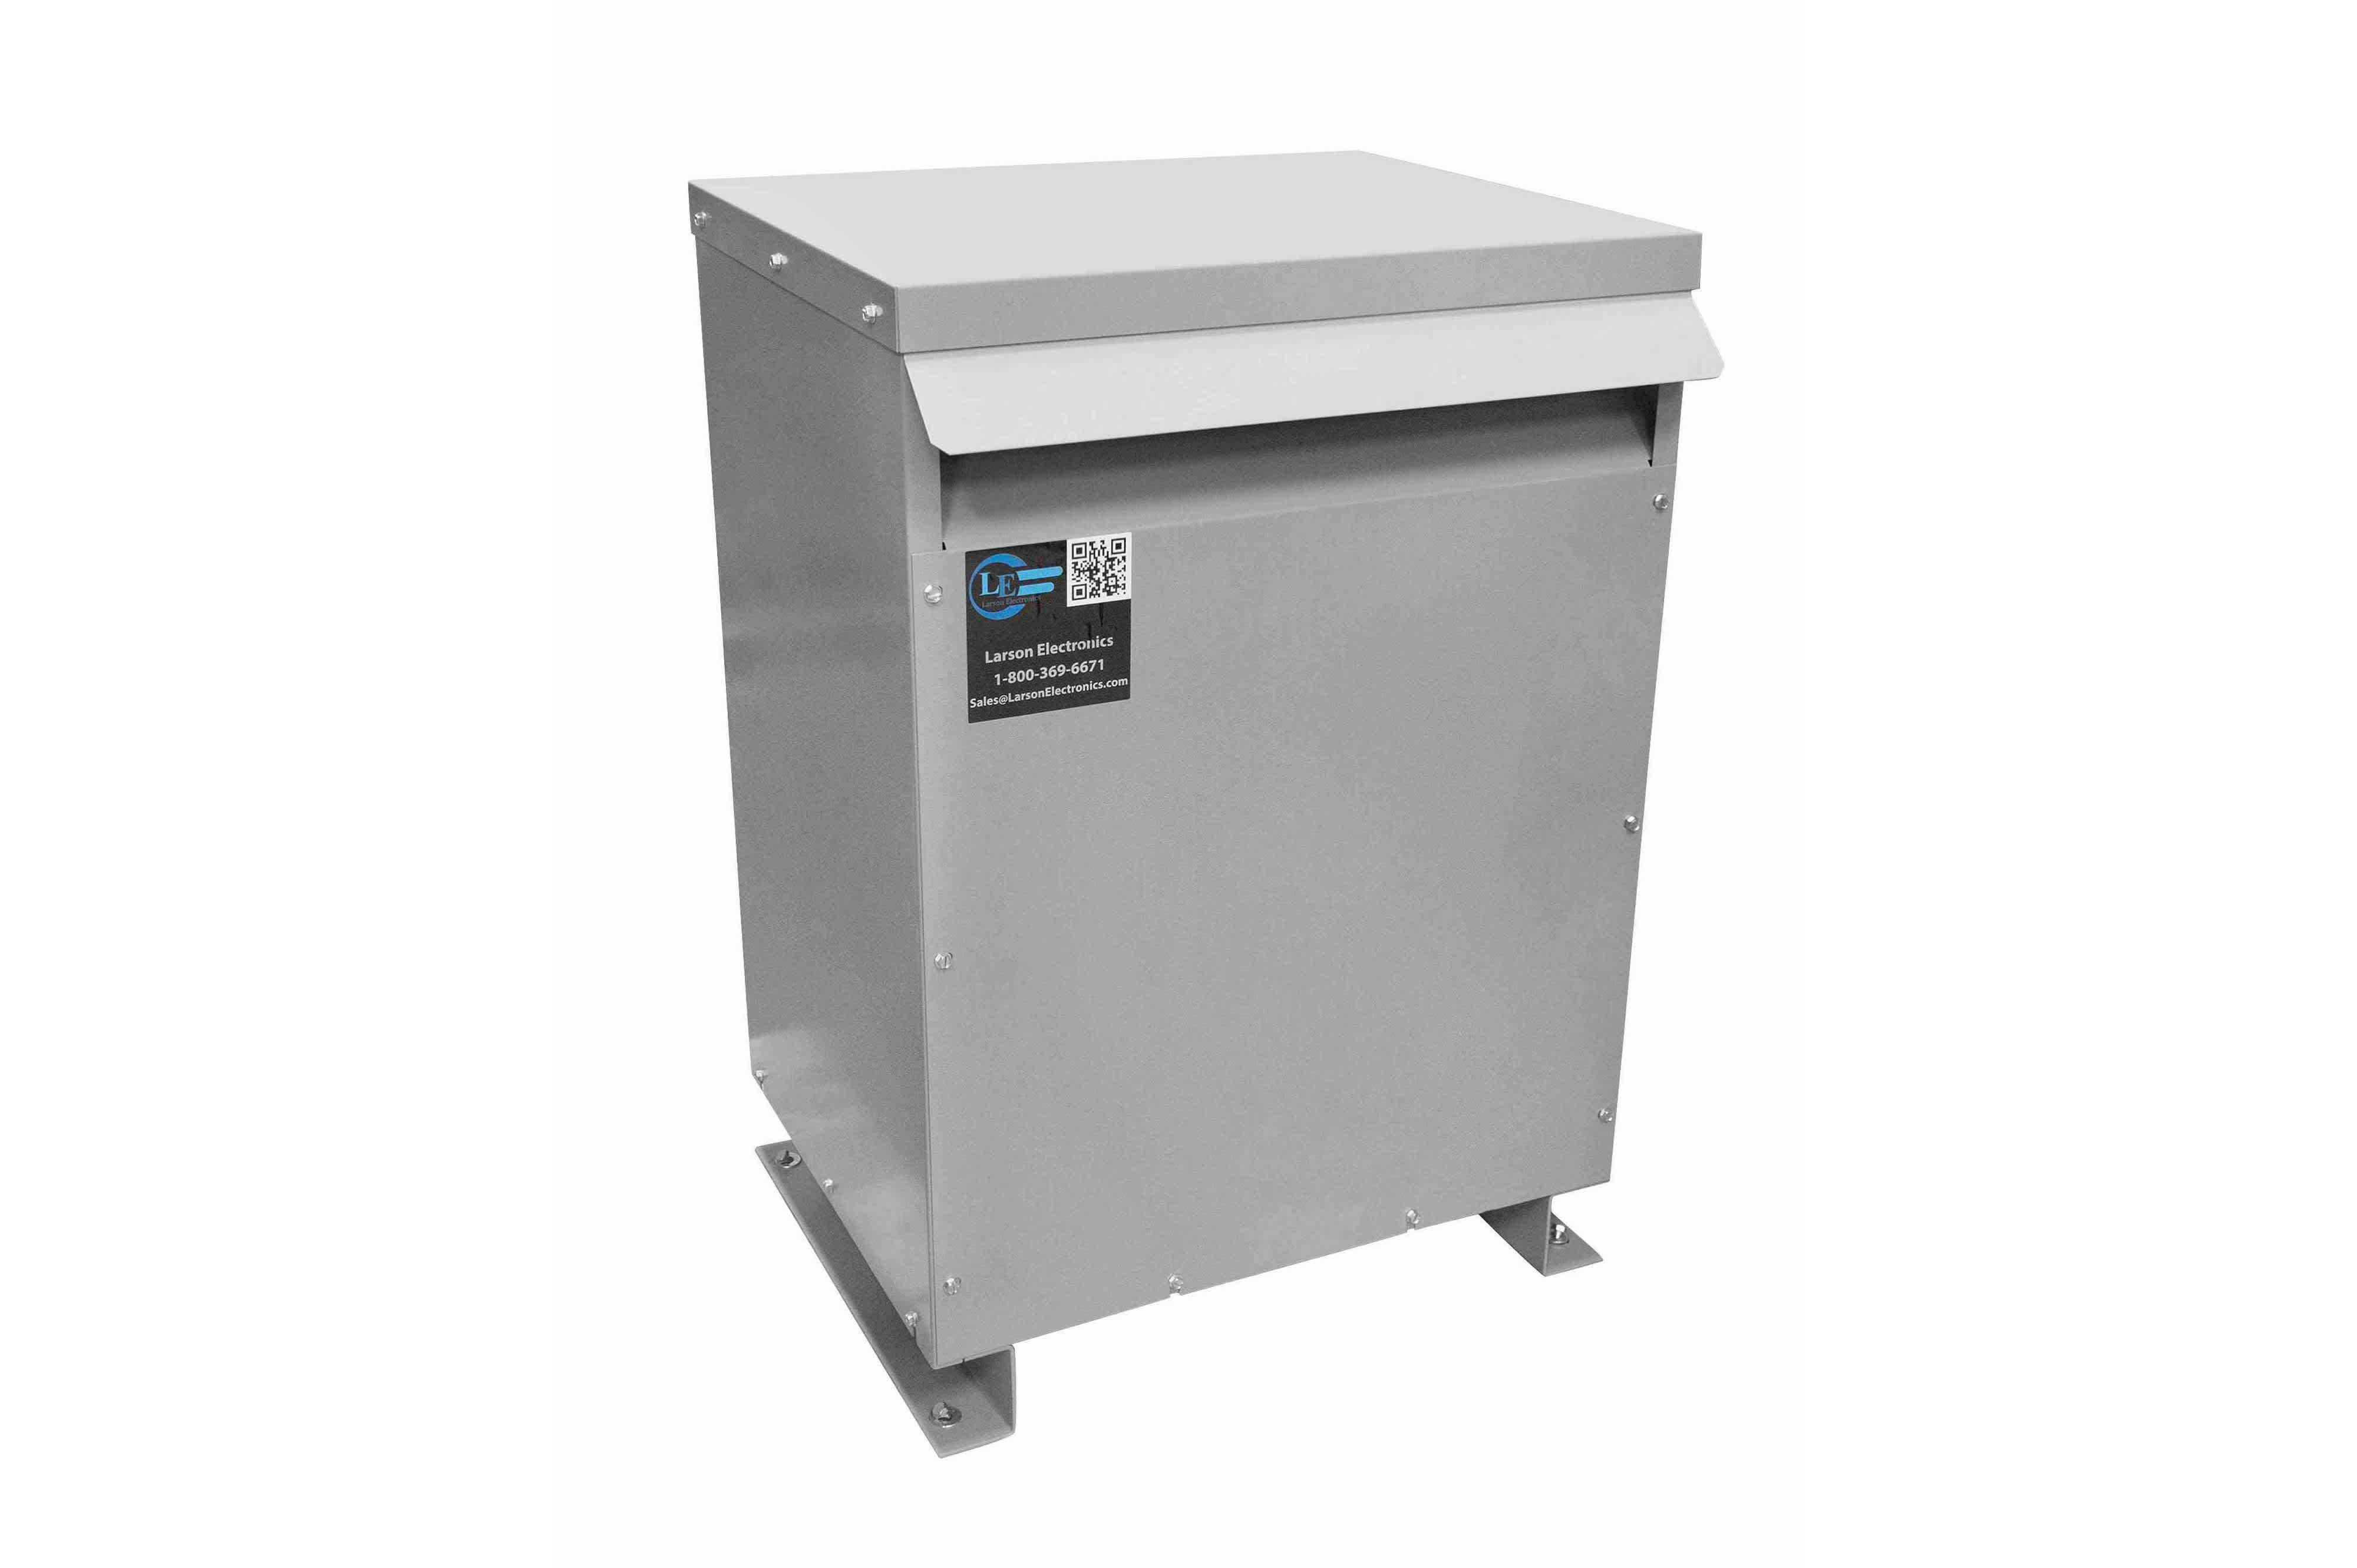 13 kVA 3PH Isolation Transformer, 220V Wye Primary, 480Y/277 Wye-N Secondary, N3R, Ventilated, 60 Hz